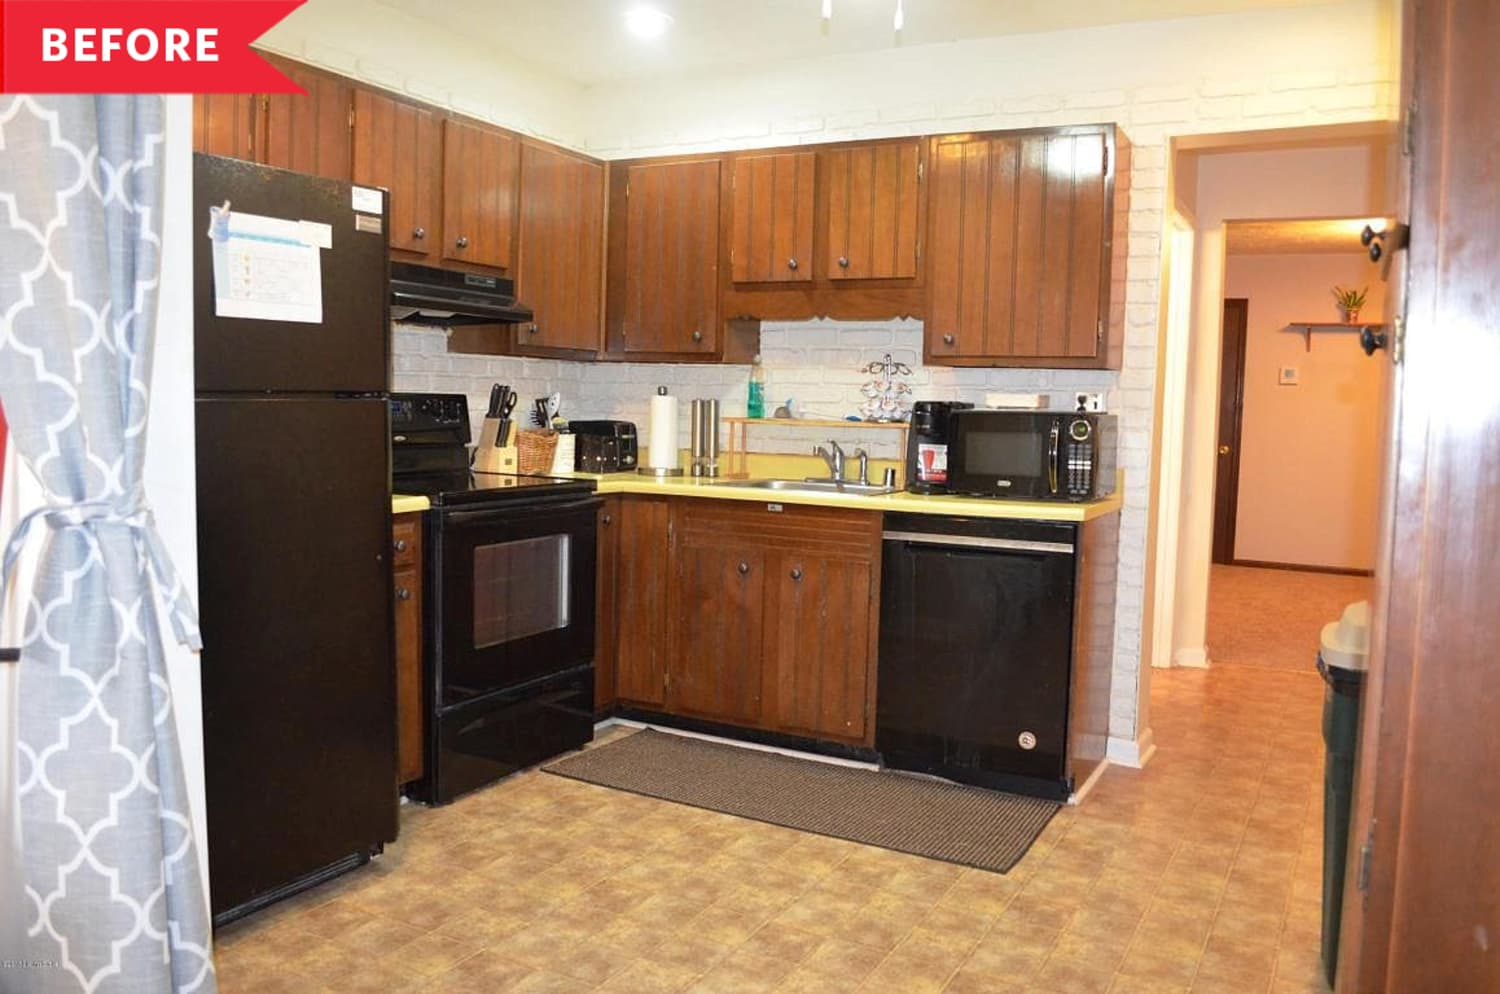 Before & After: The IKEA Cabinets in This Kitchen Redo Look Totally Custom